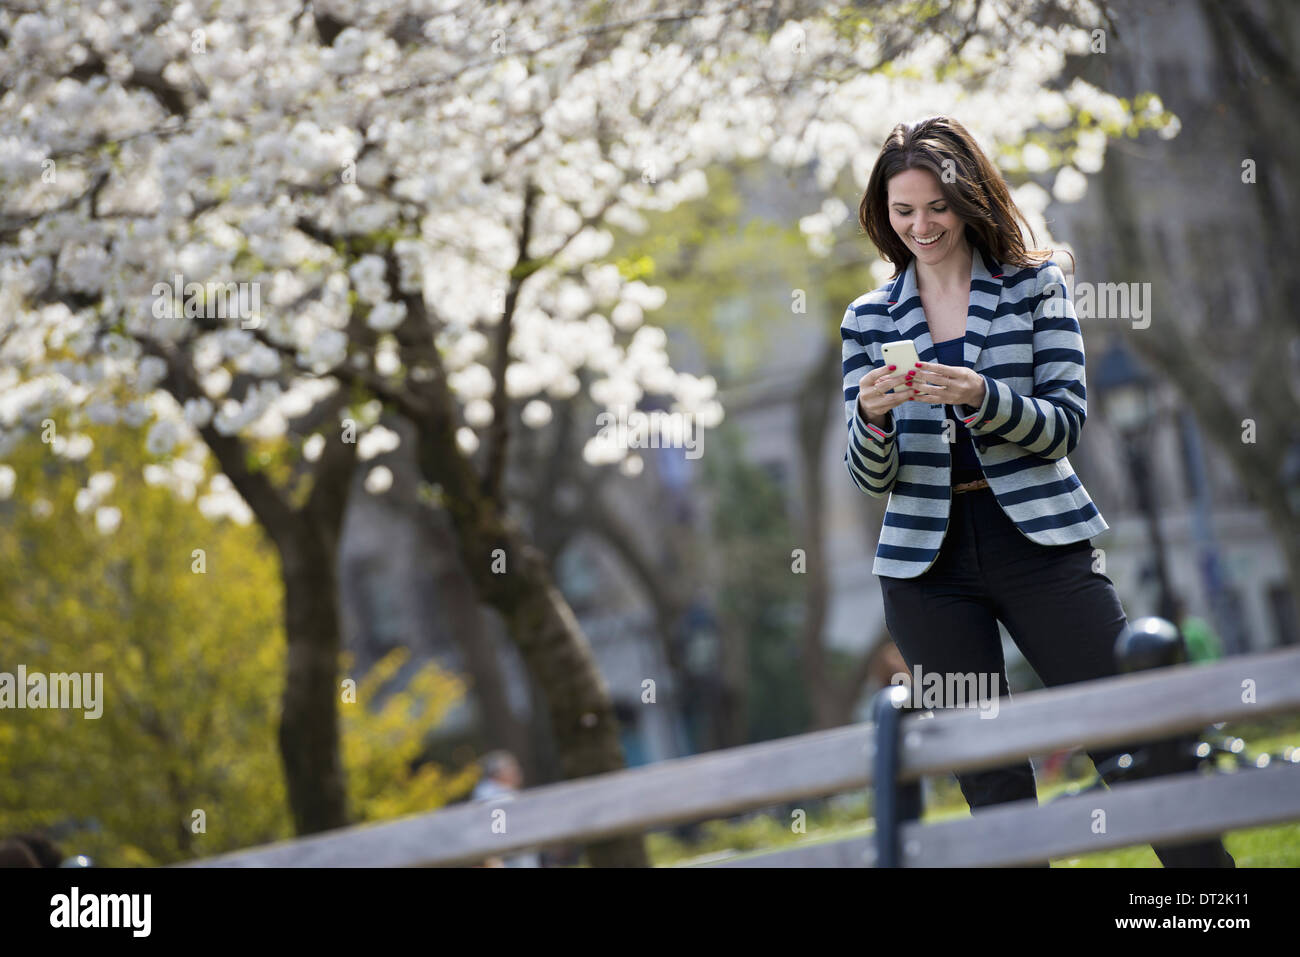 Outdoors in the city in spring time New York City park White blossom on the trees A woman standing checking her Stock Photo